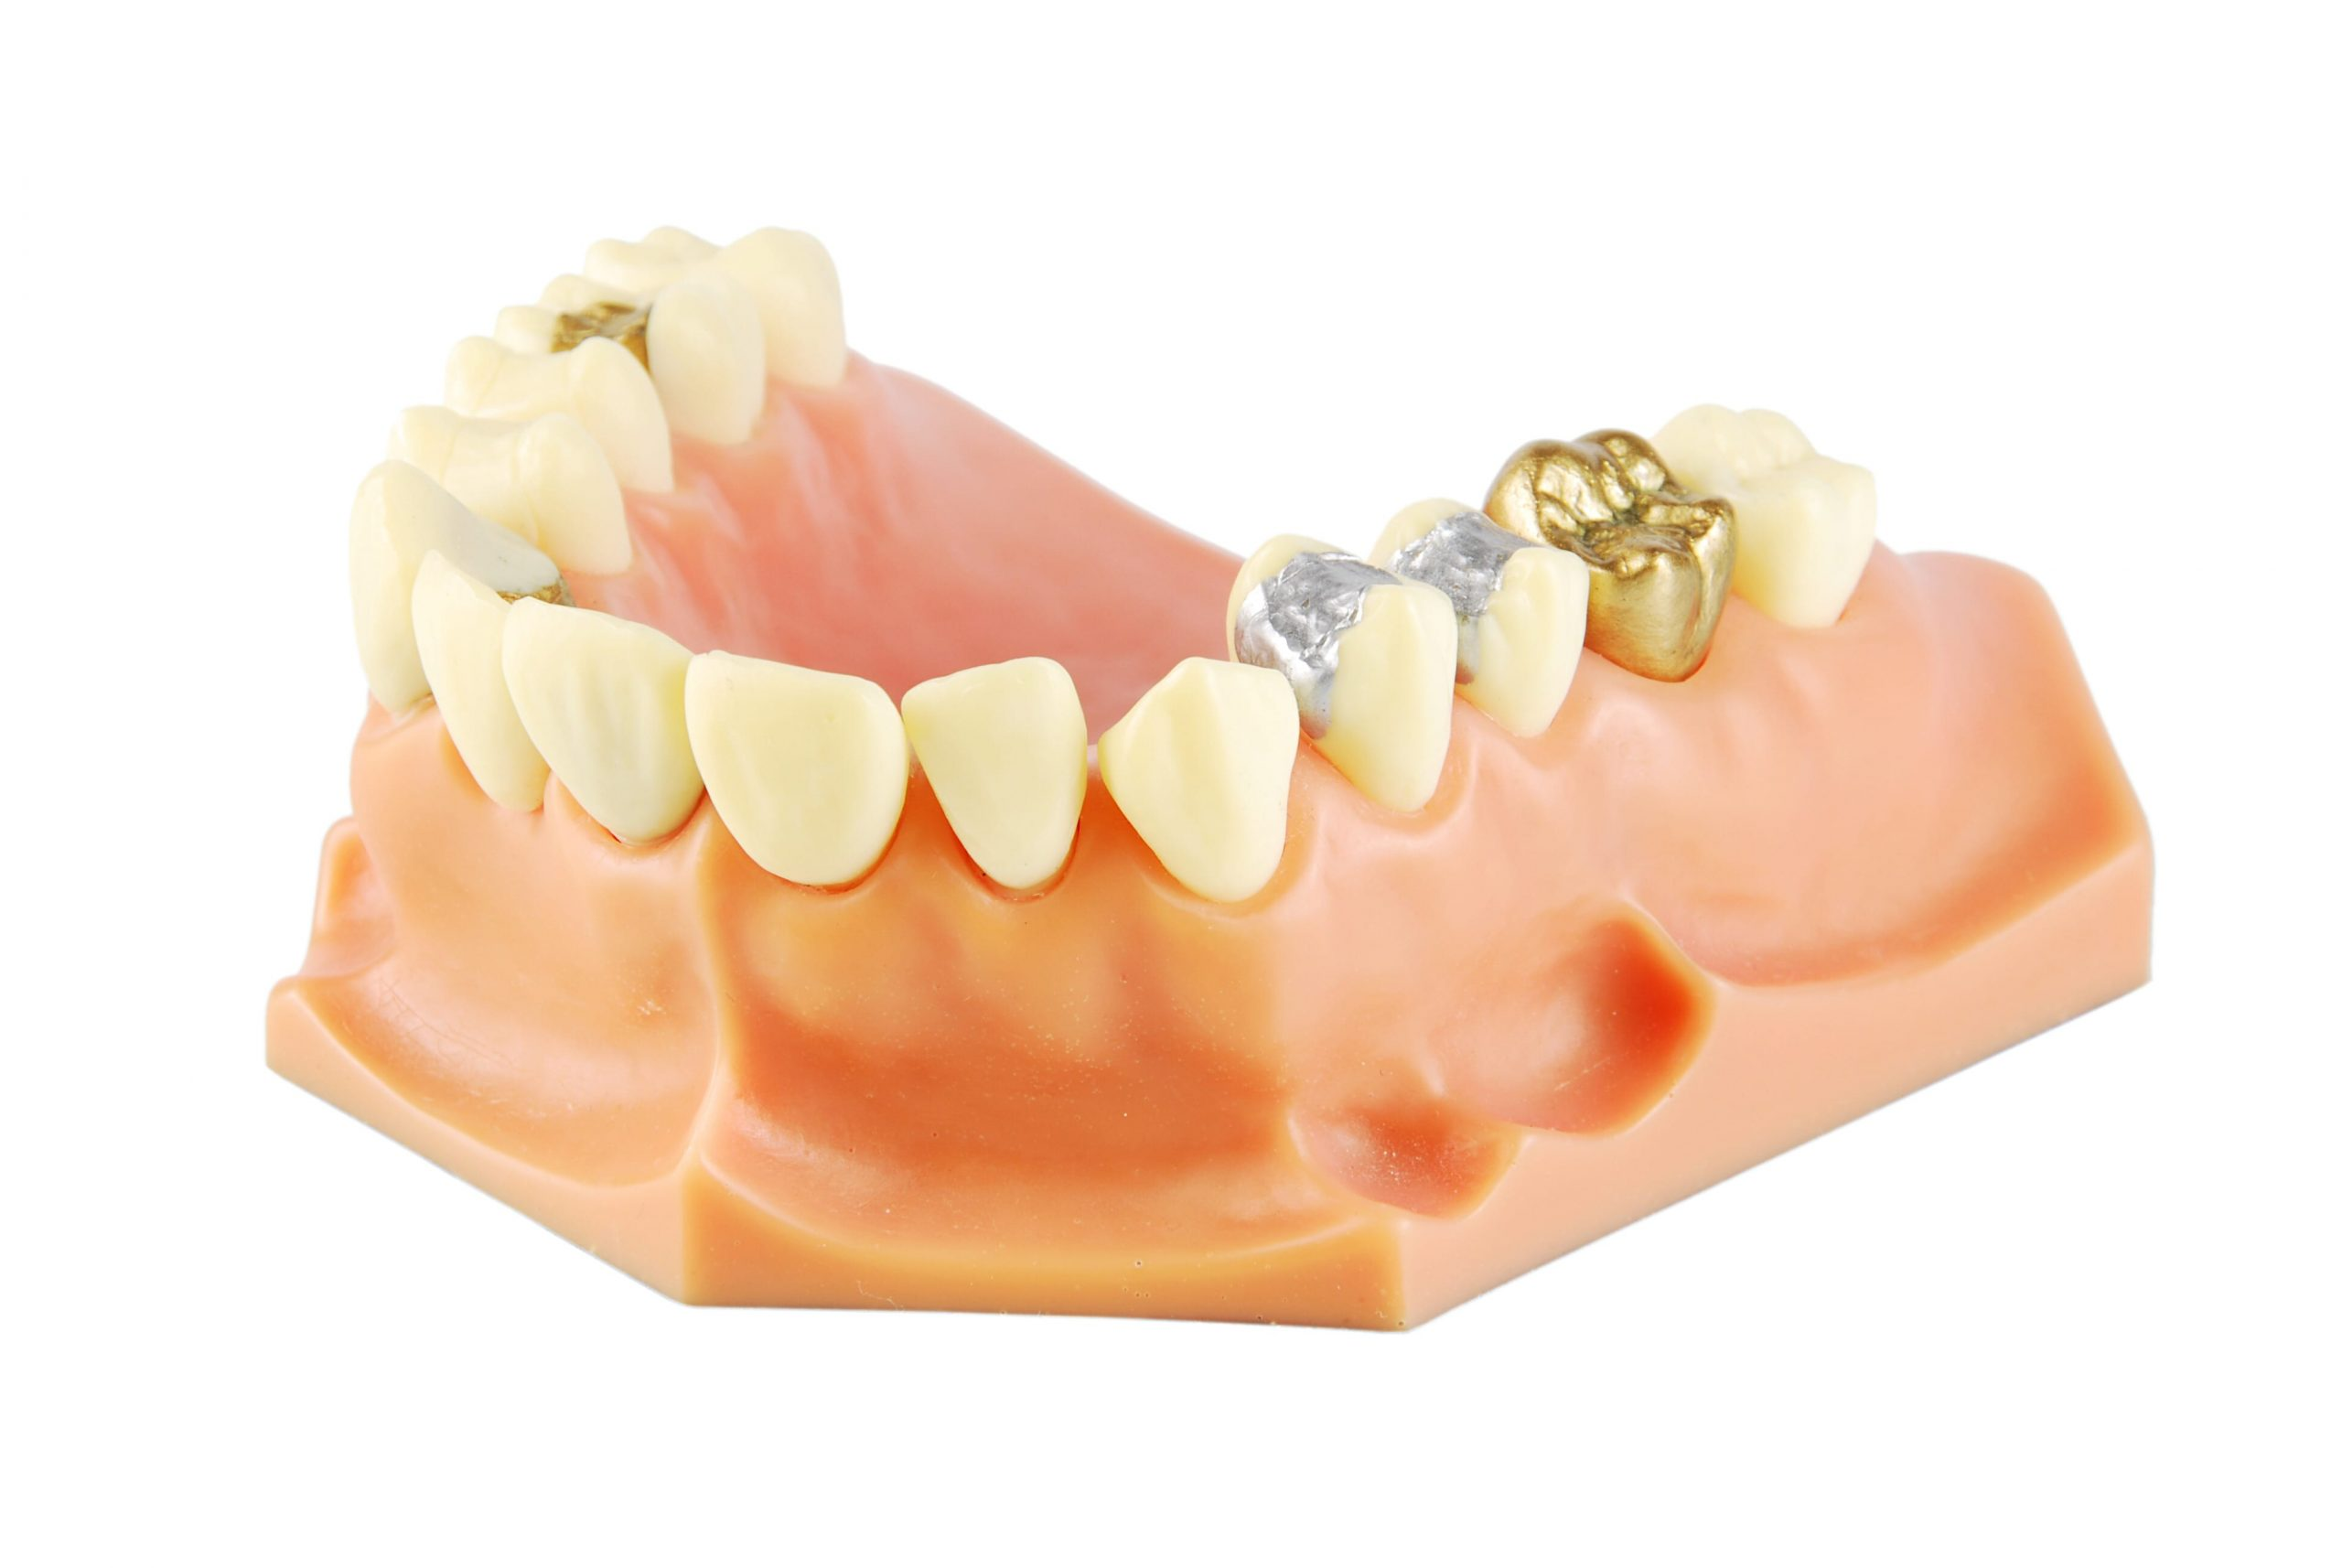 teeth after dental crowns and bridges treatment